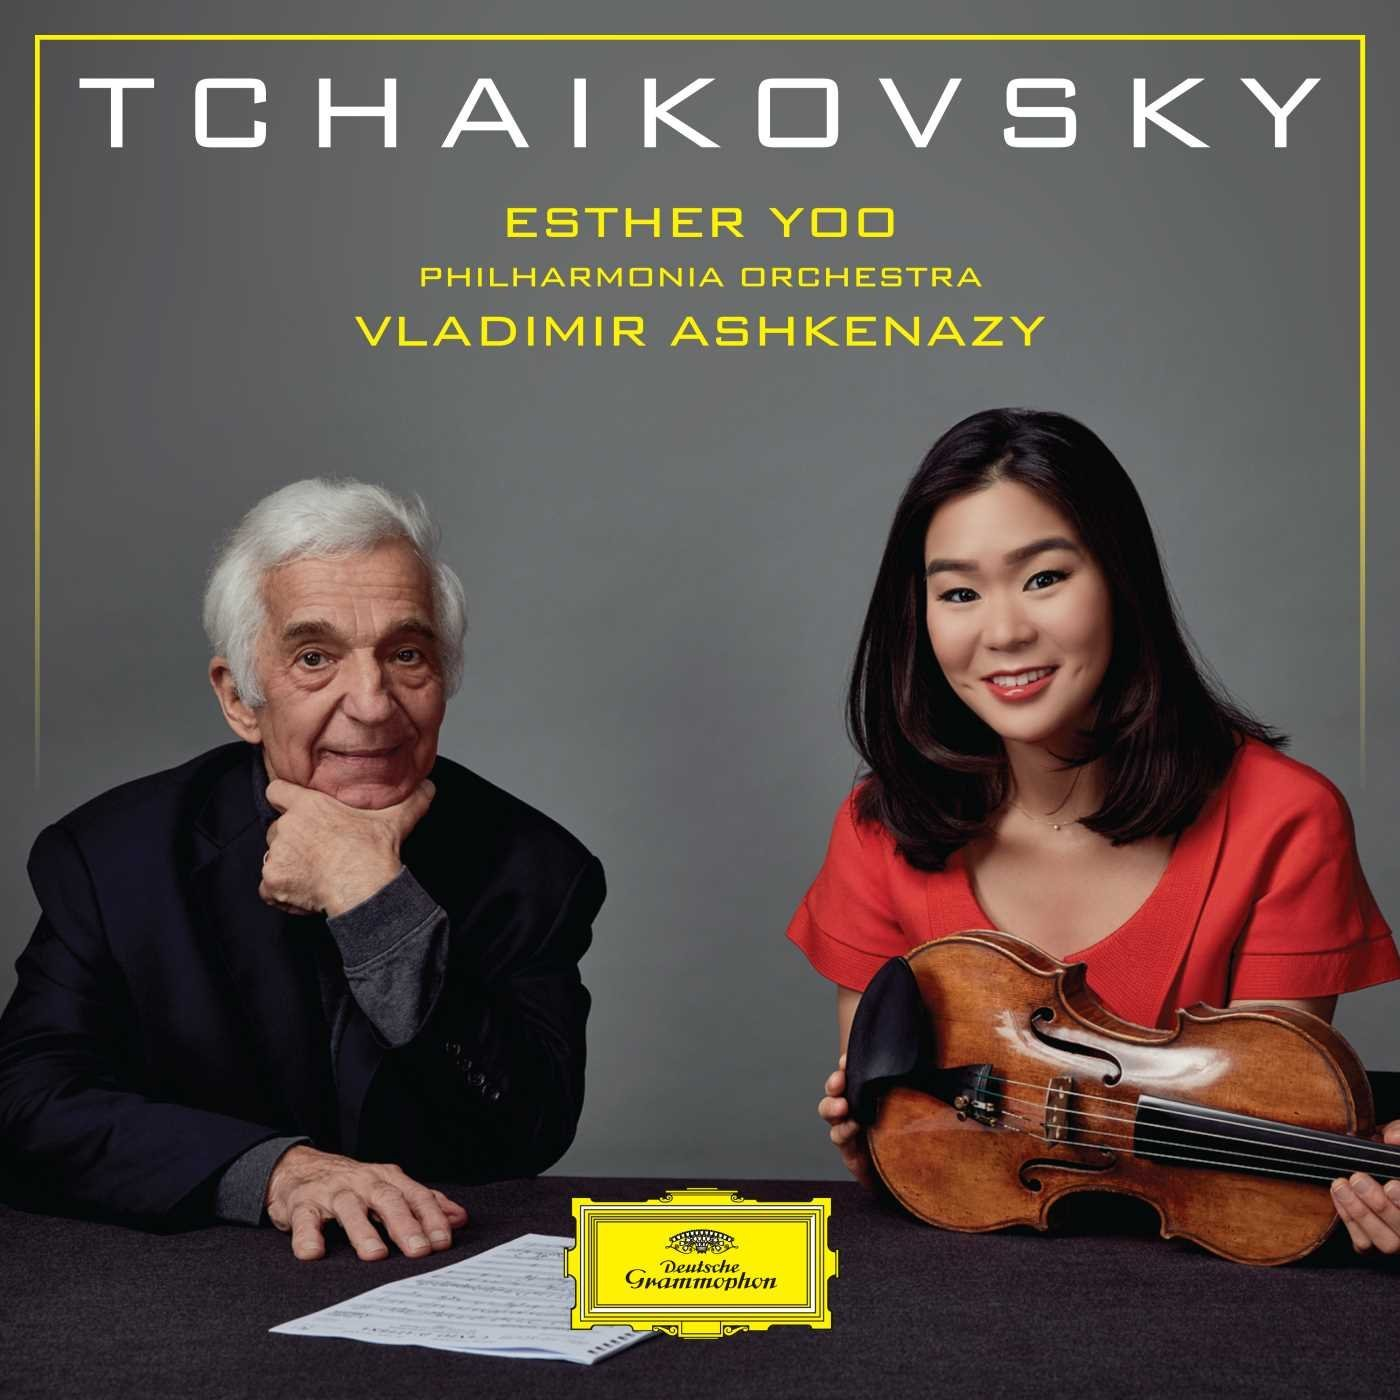 Tchaikovsky: Esther Yoo performs with the Philharm